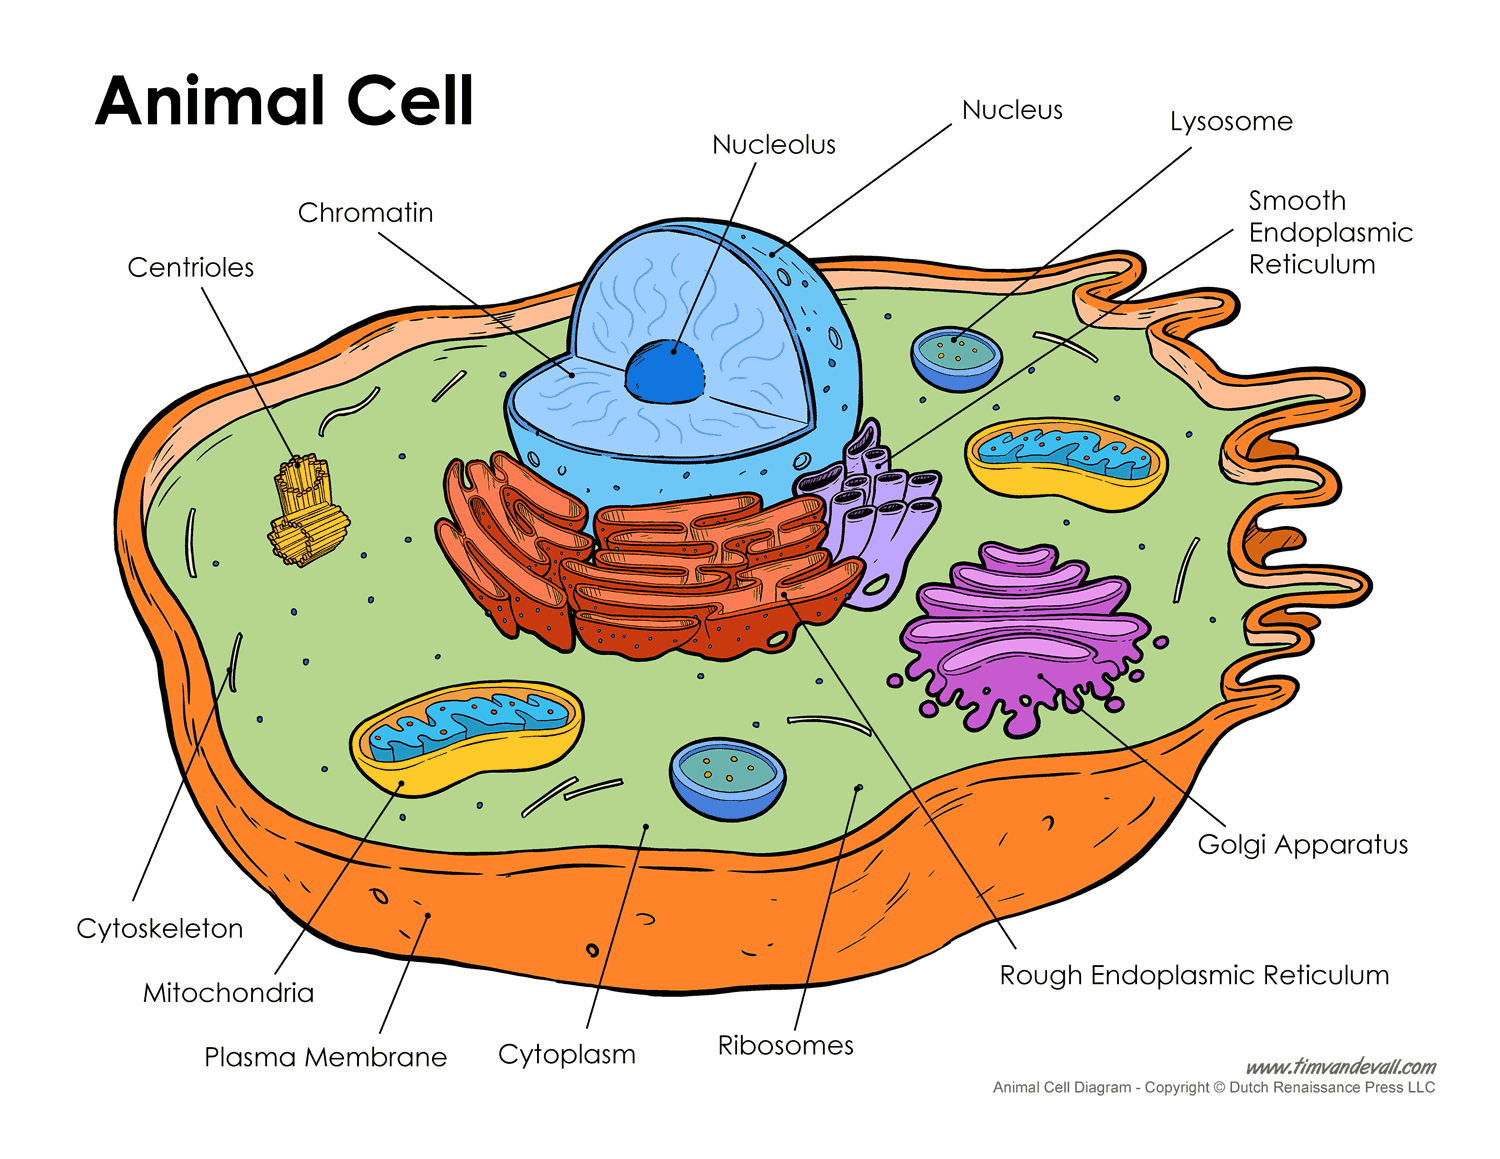 printable labeled and unlabeled animal cell diagrams, with list of